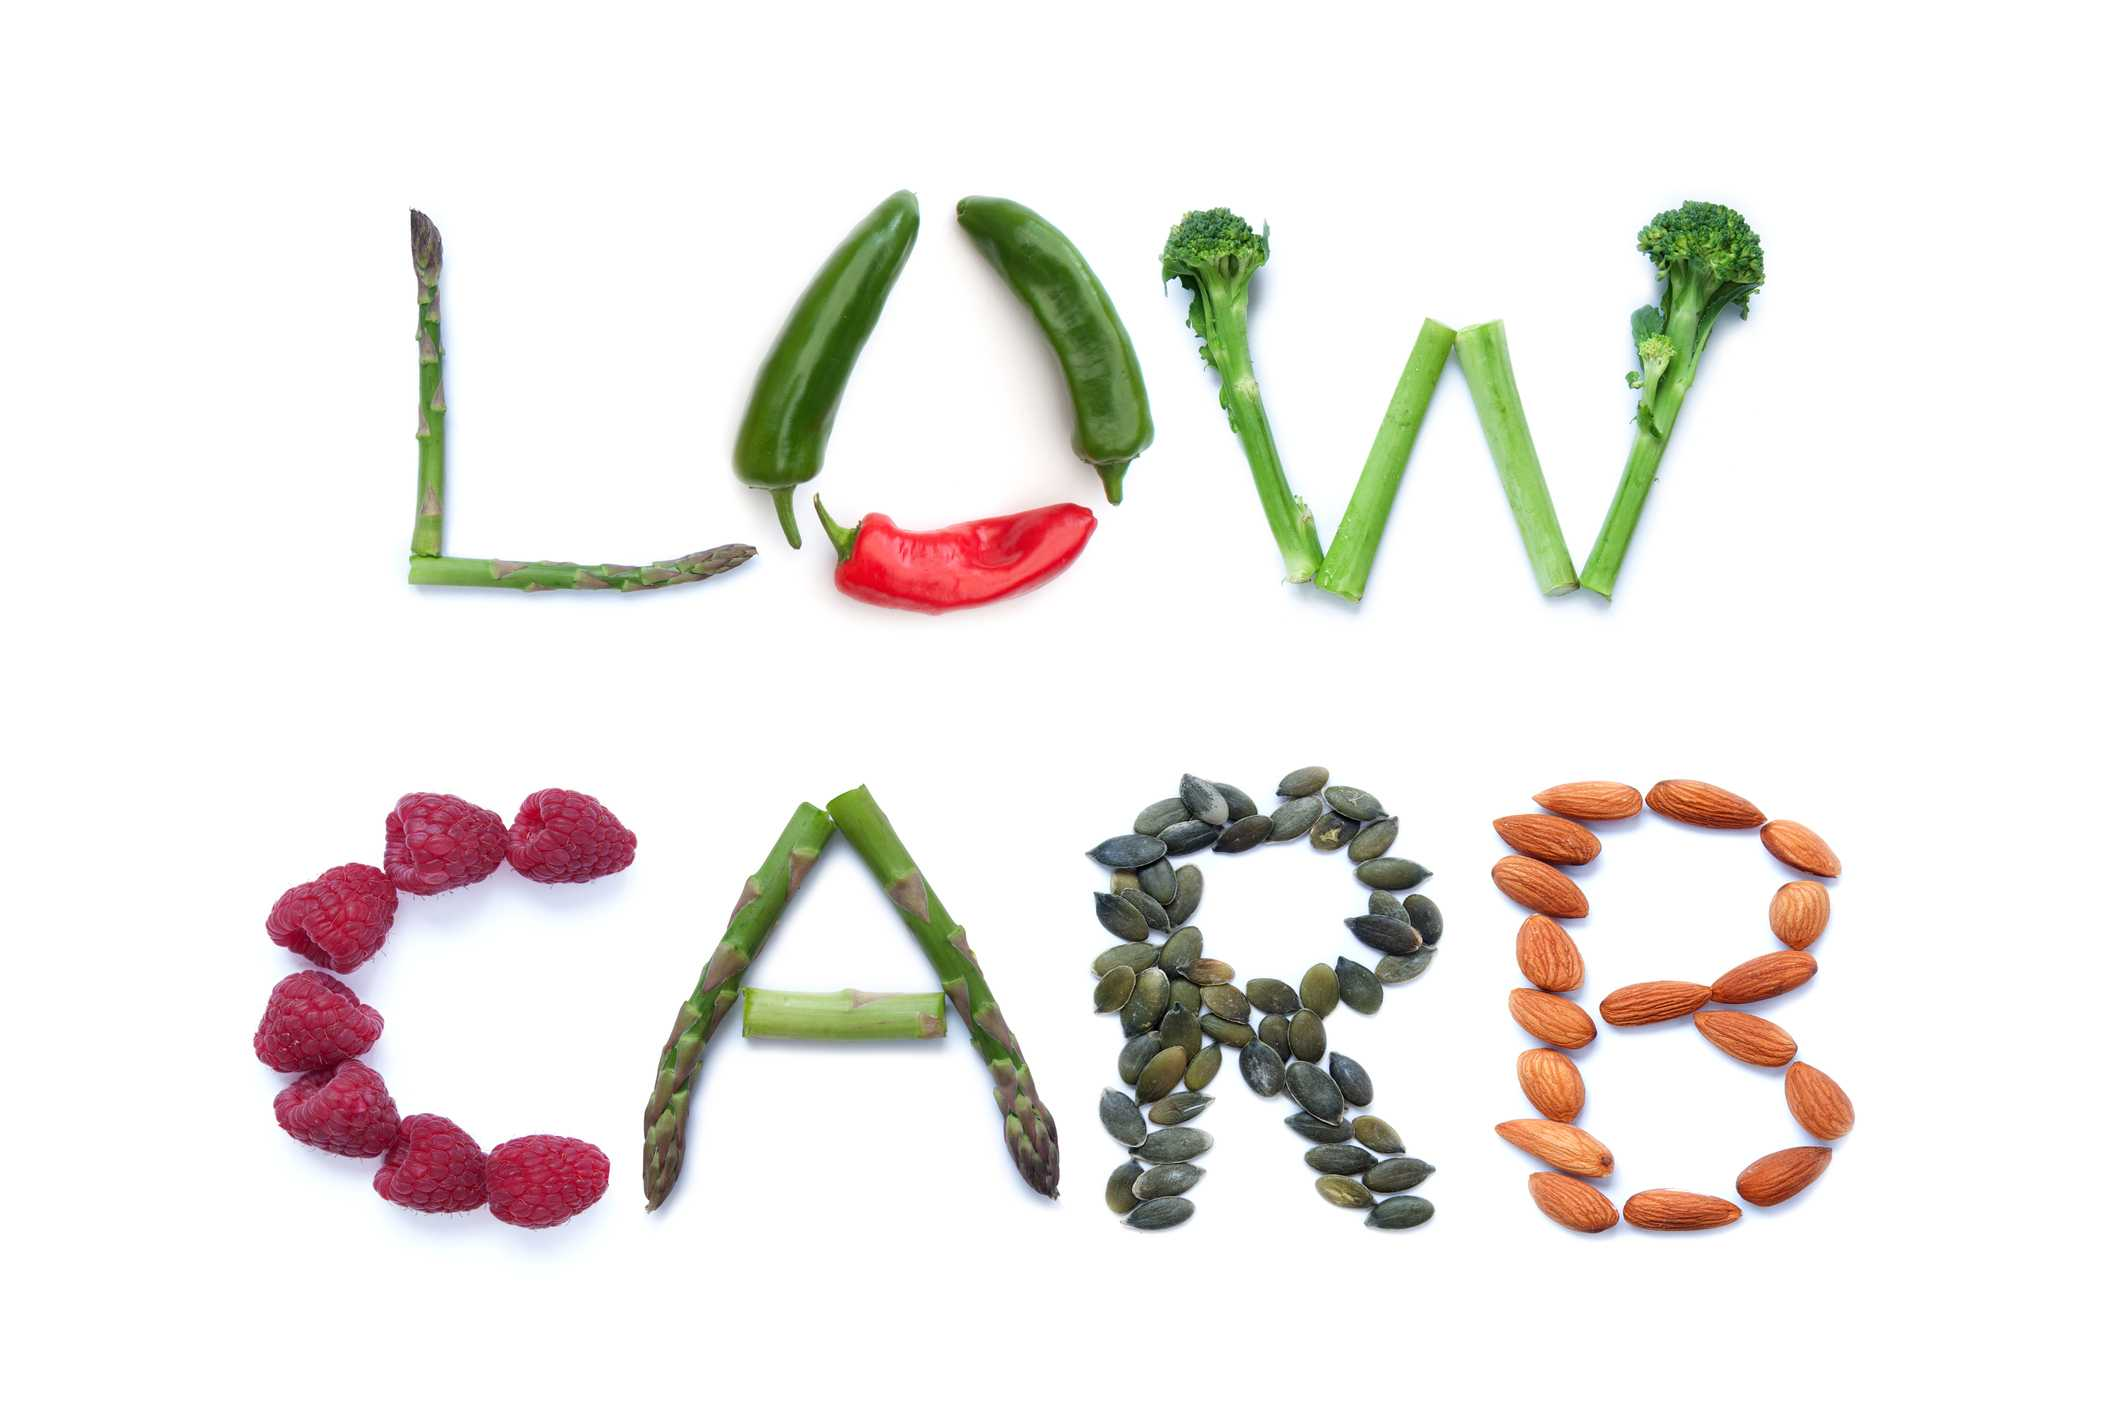 How Does Low Carb Work?